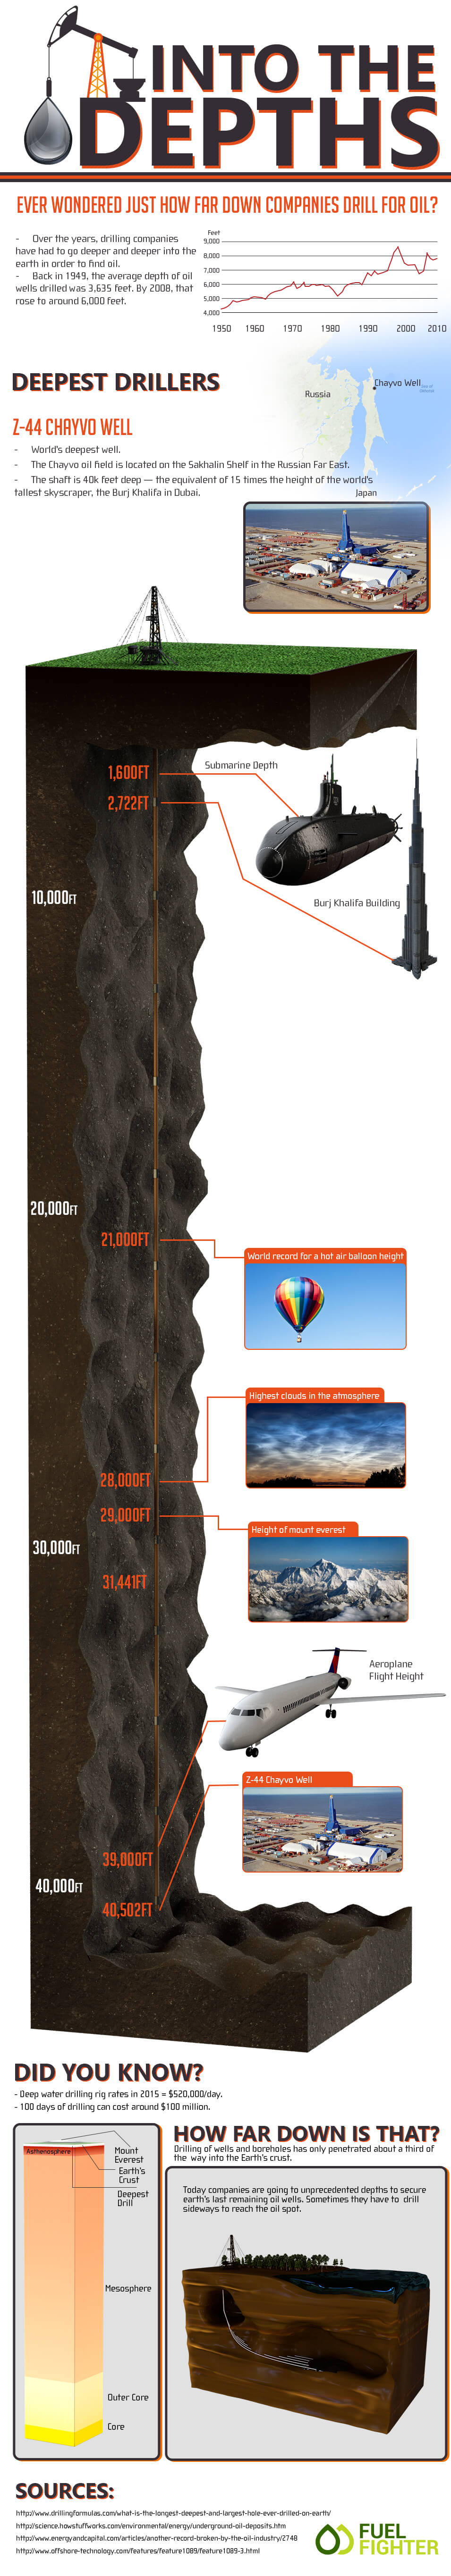 Worlds deepest oil well infographic